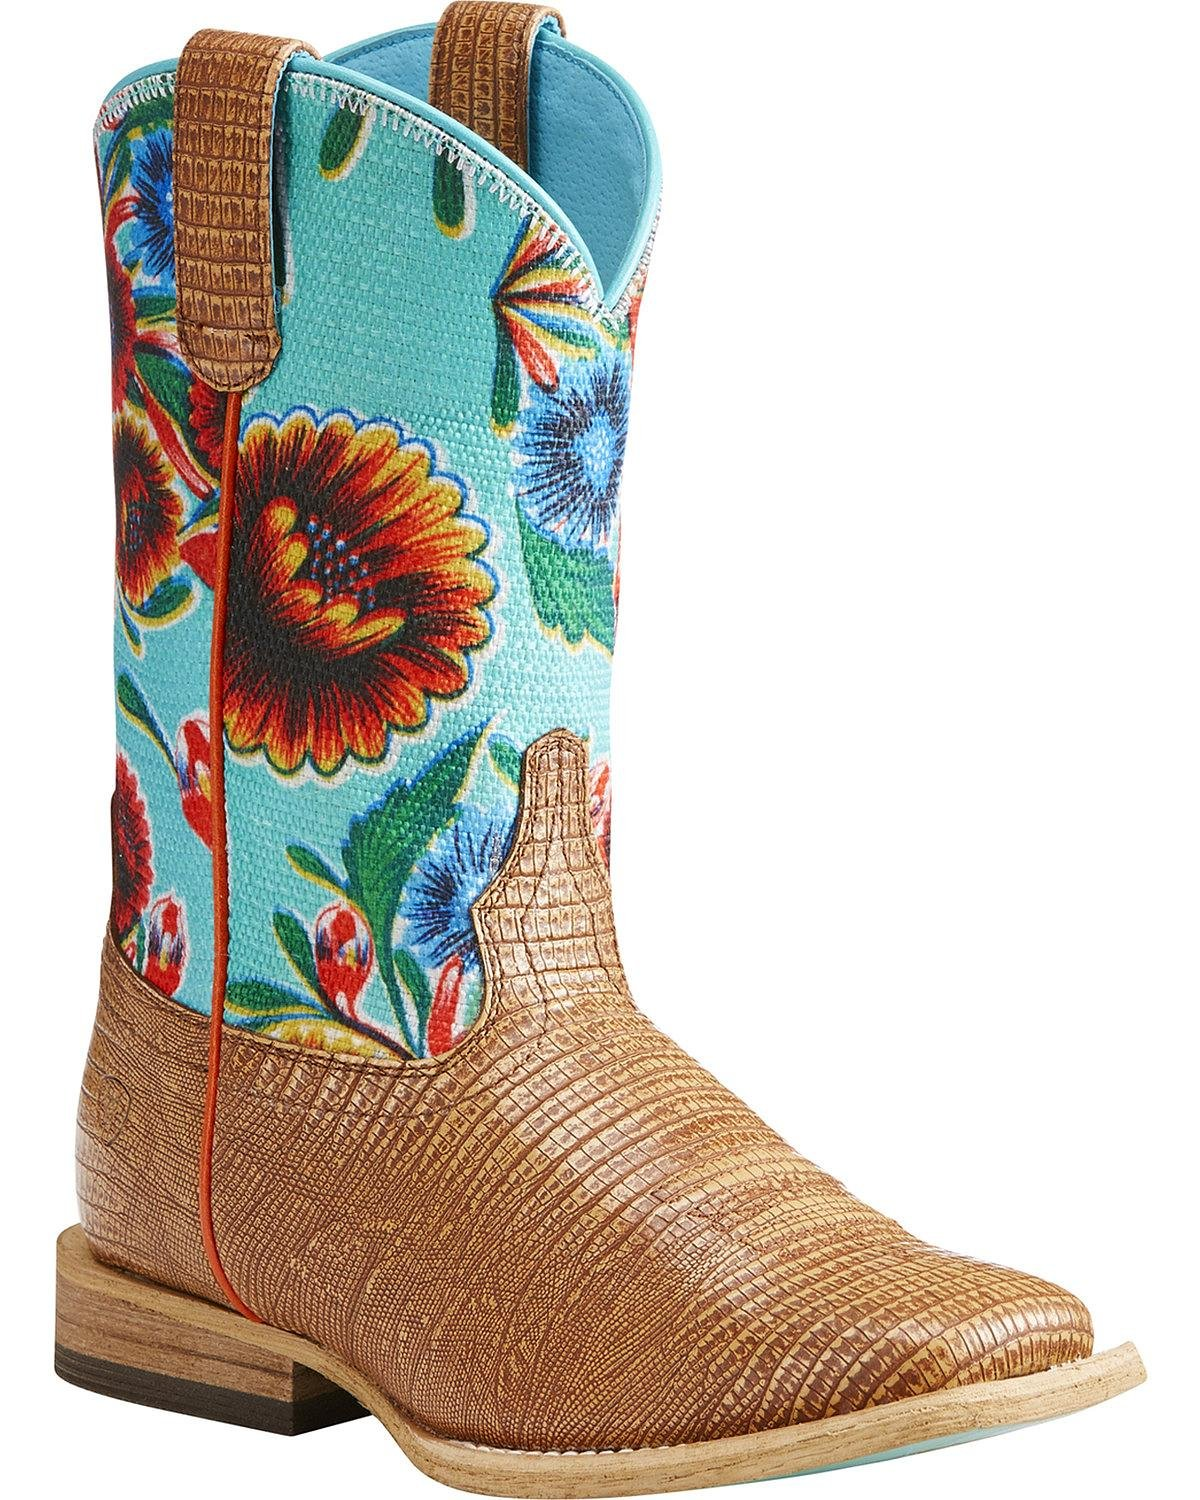 Ariat Kids' Gringa Western Boot, Natural Lizard Print/Turquoise Oil Cloth Print, 6 M US Big Kid